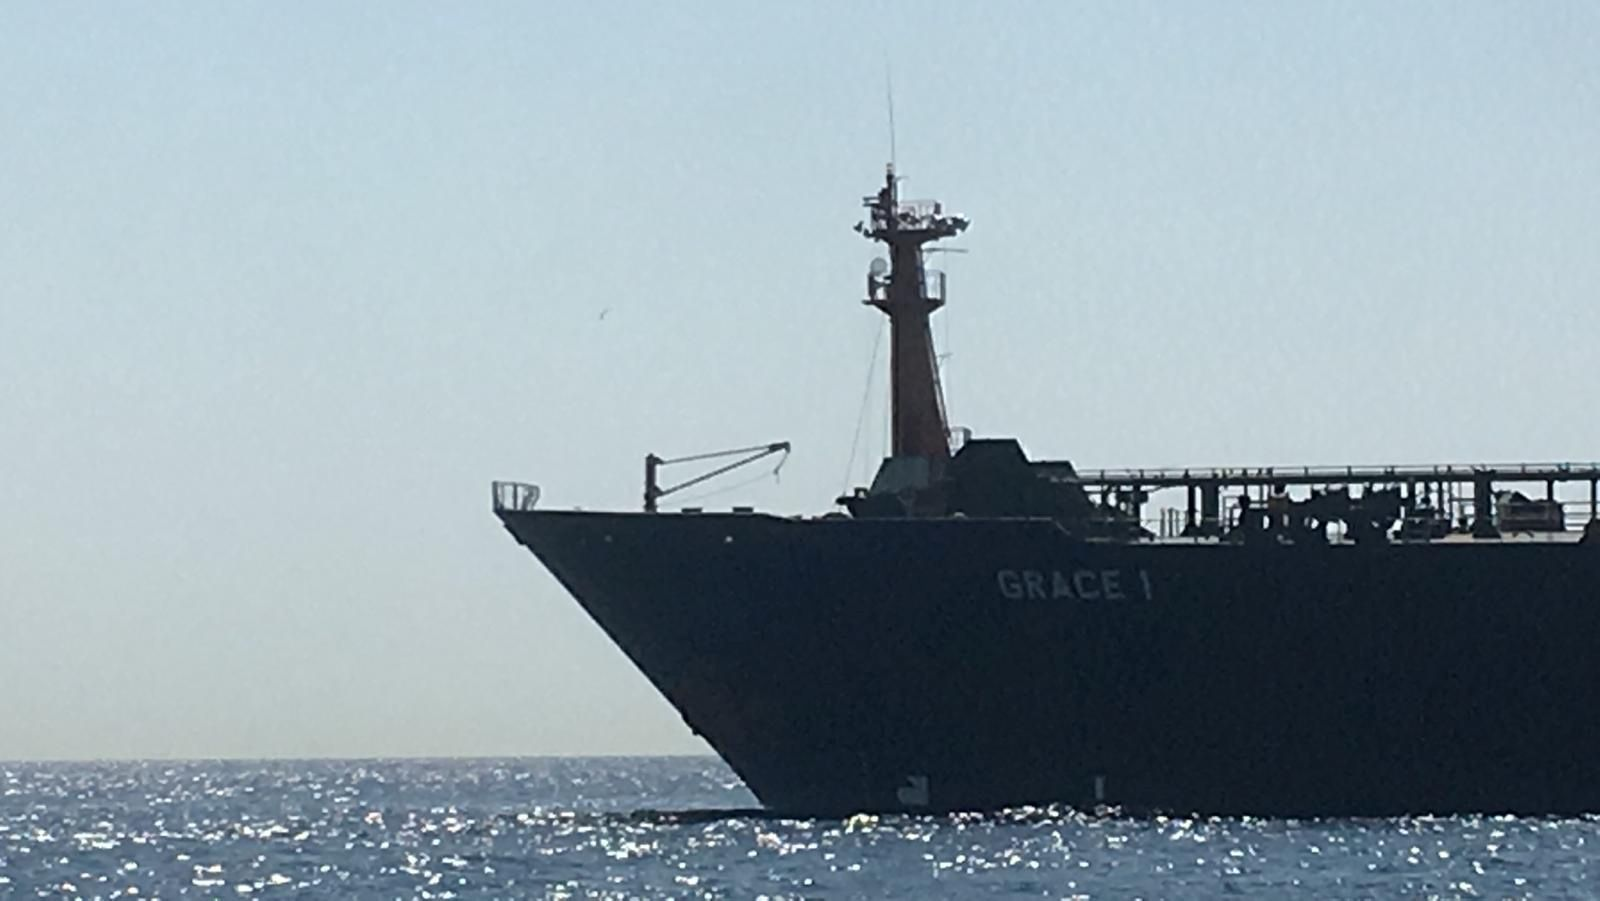 Sale of Seized Iranian Tanker Could Be Ordered for Security Reasons